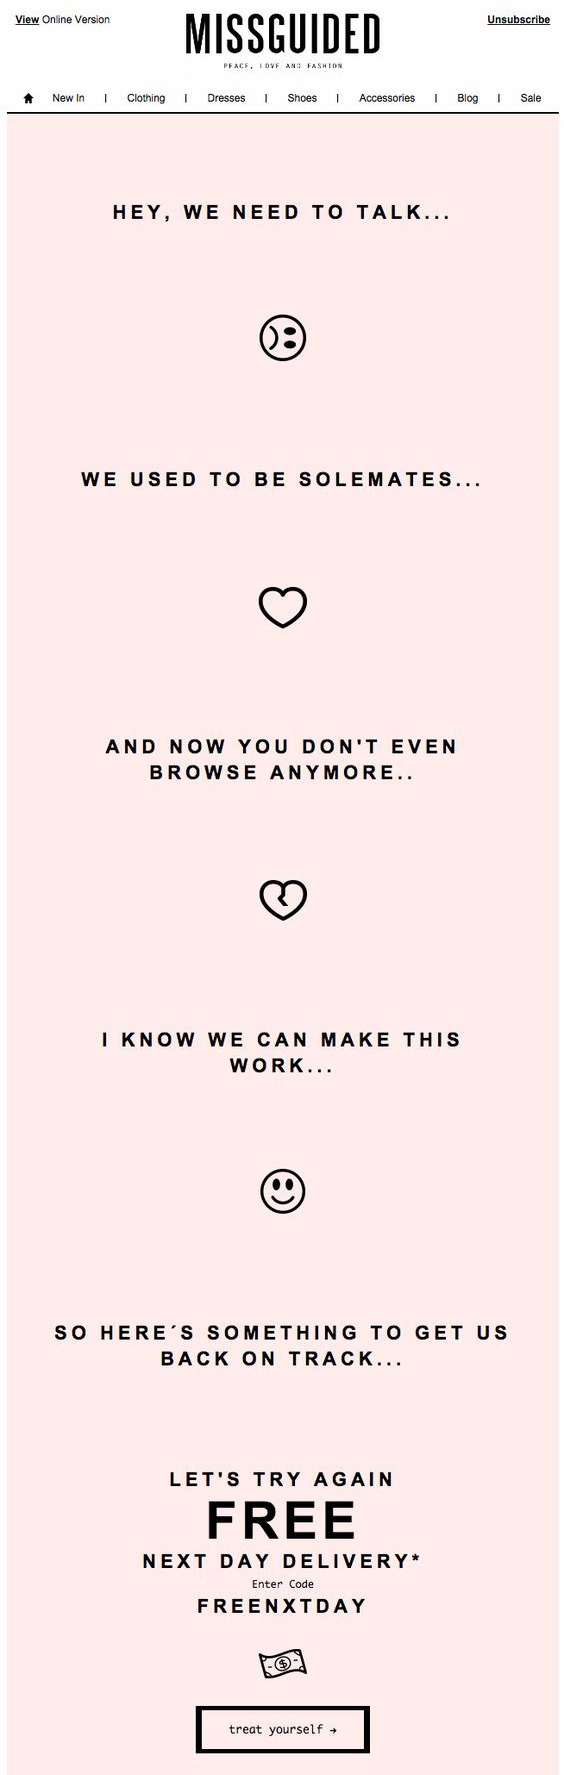 Missguided - Email Marketing Campaign